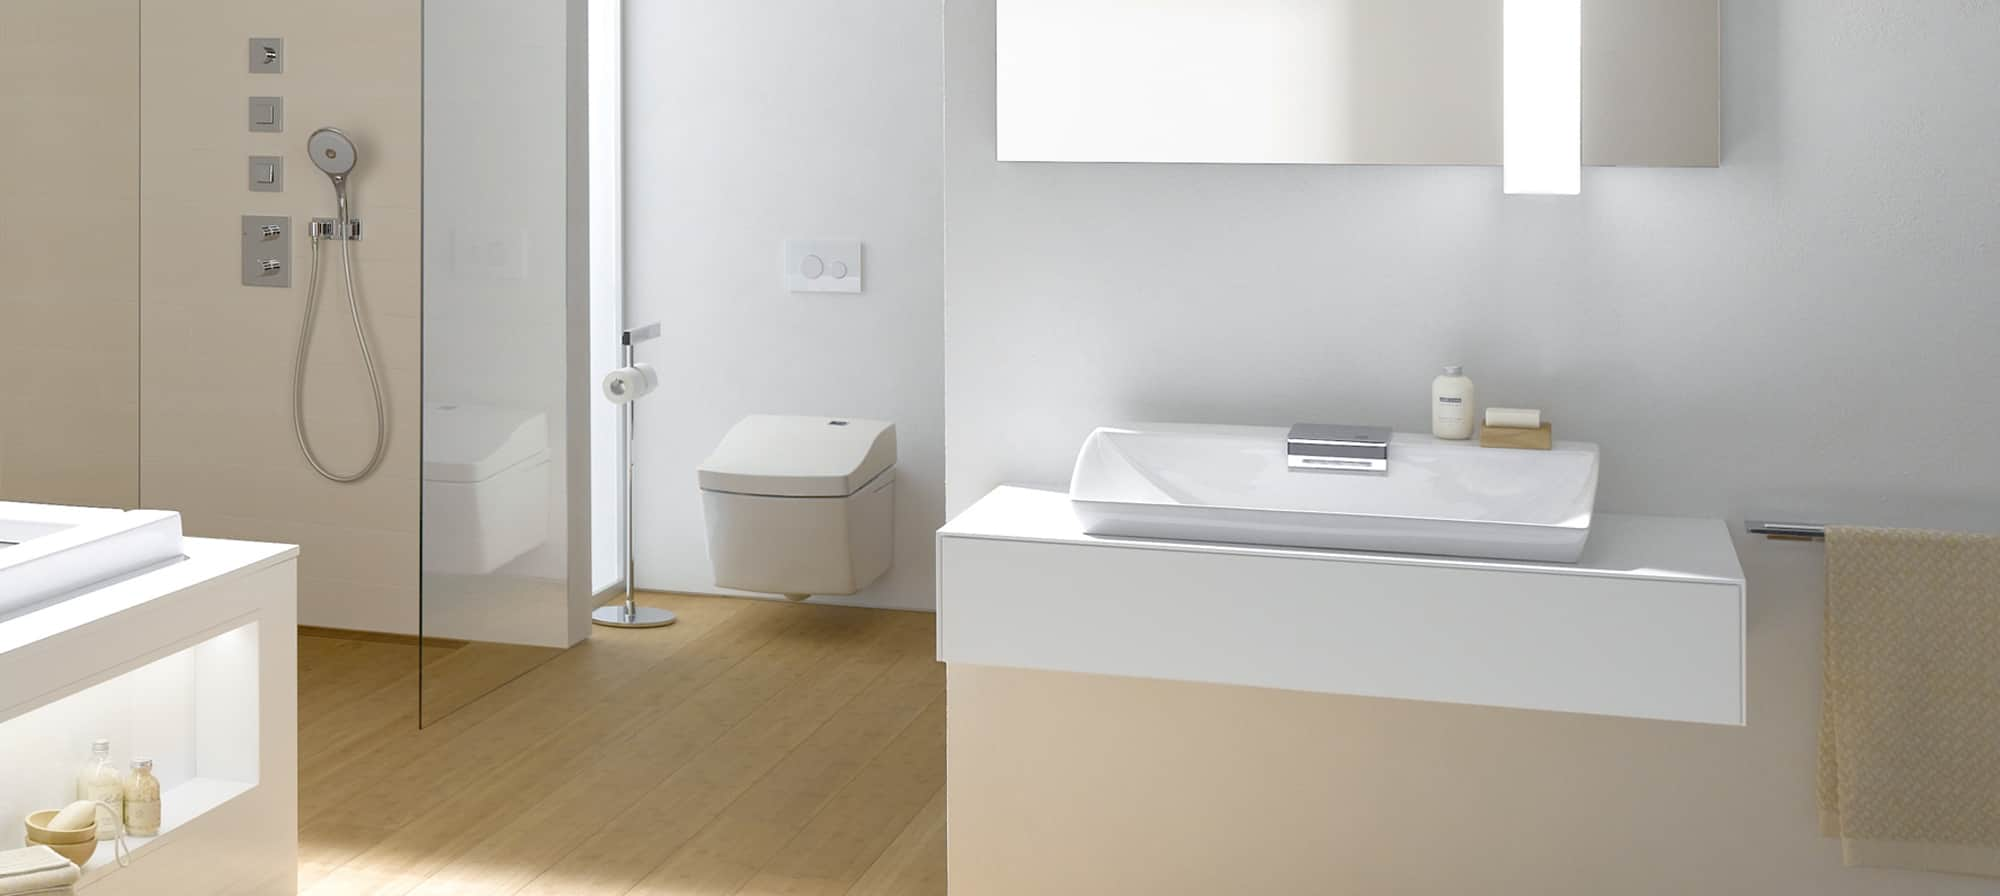 Toto Washlet - Alternative Bathroom Showrooms London